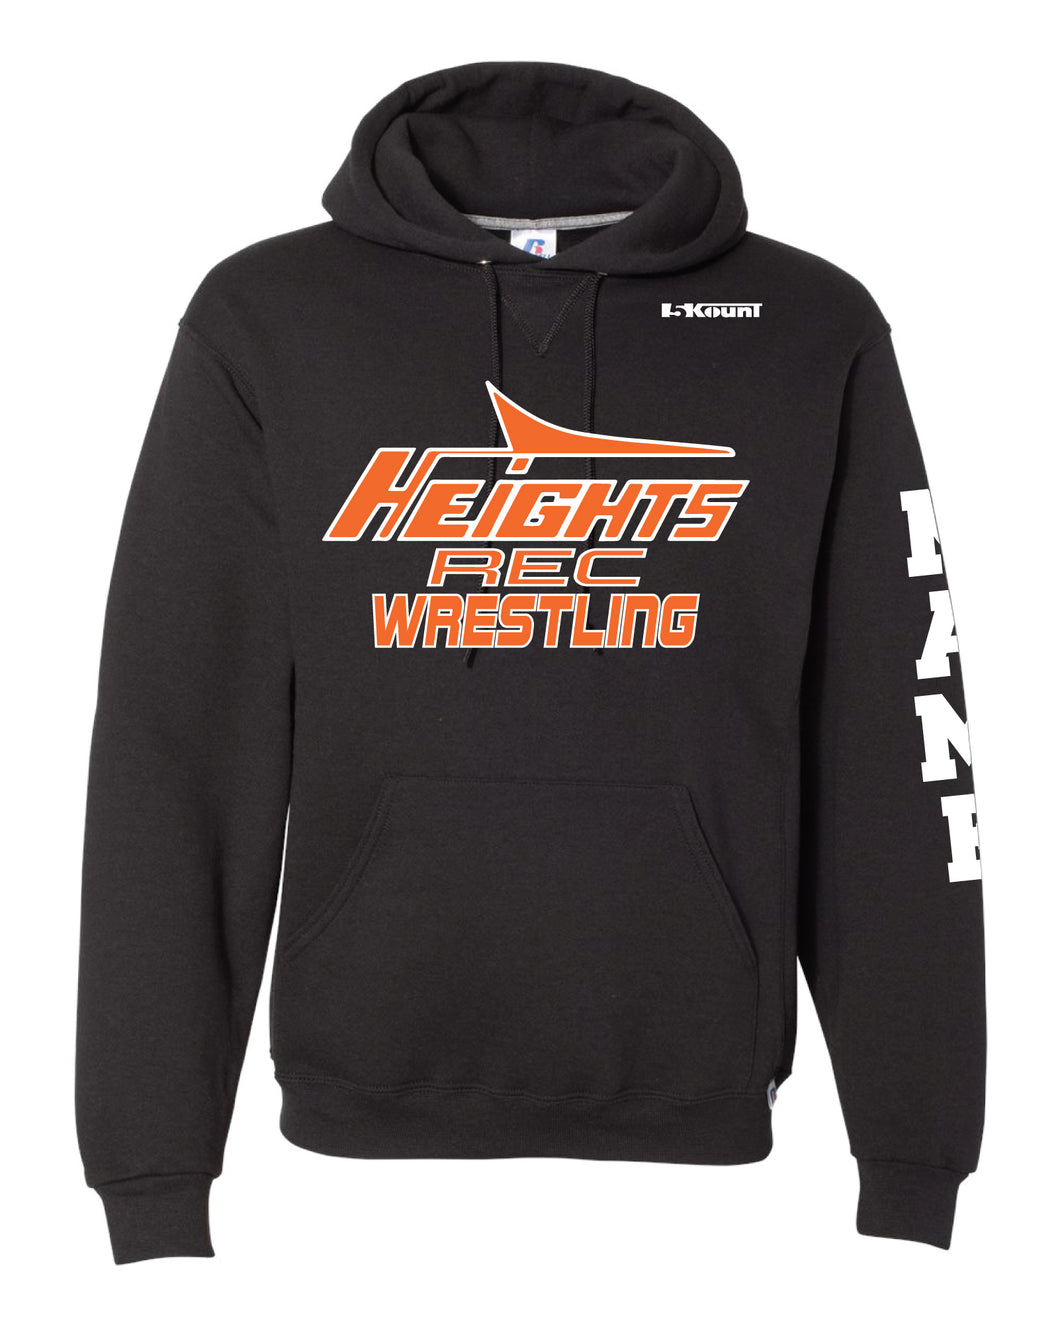 Hasbrouck Heights Wrestling Russell Athletic Cotton Hoodie - Black - 5KounT2018